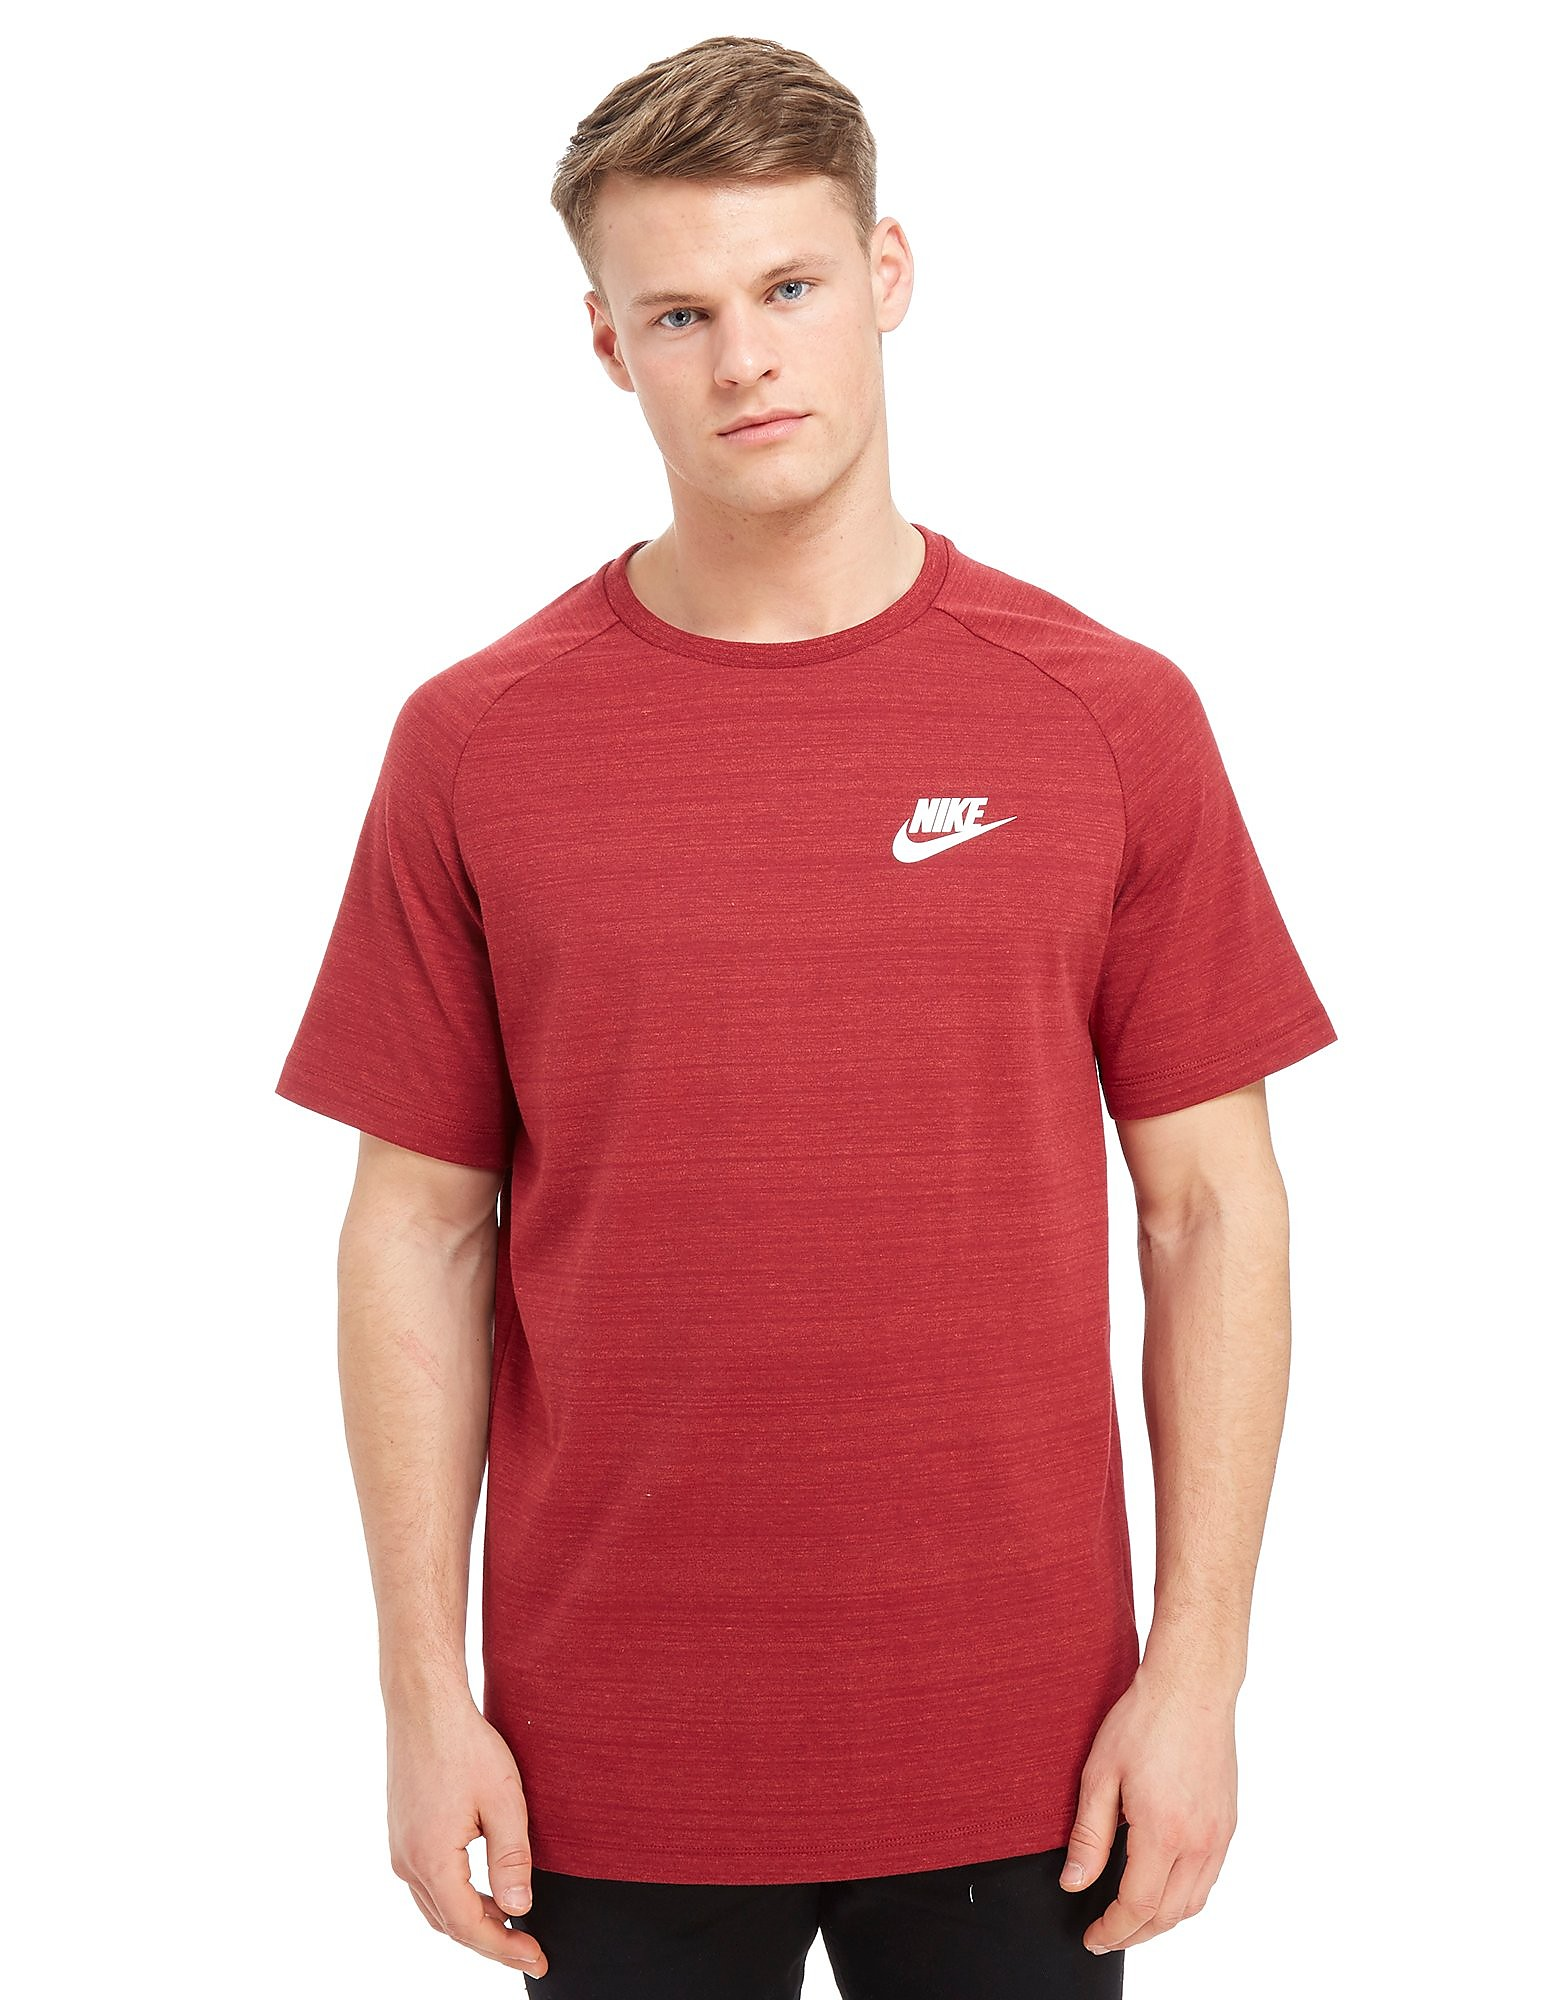 Nike Advance Knit T-Shirt